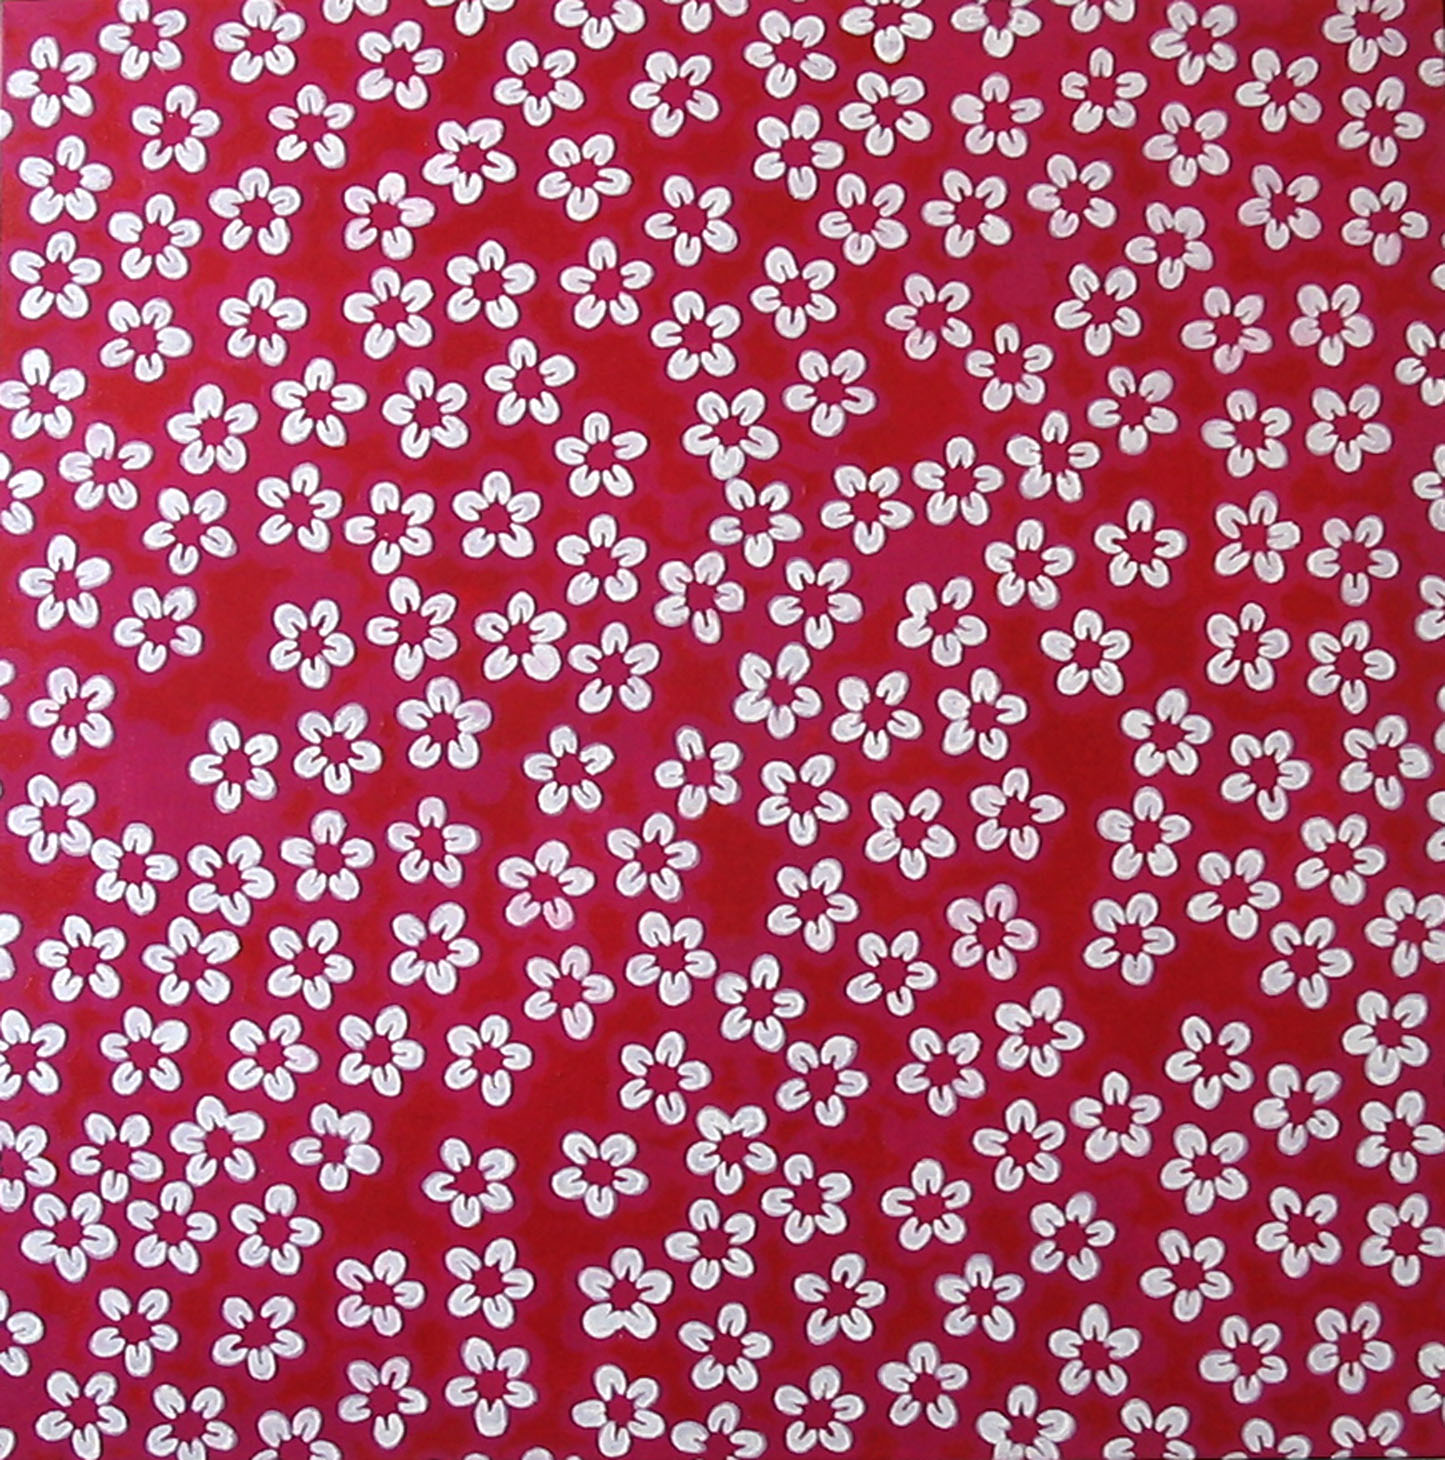 Pink Pattern, Acrylic on Canvas, 76cm x 76cm by Robin Clare